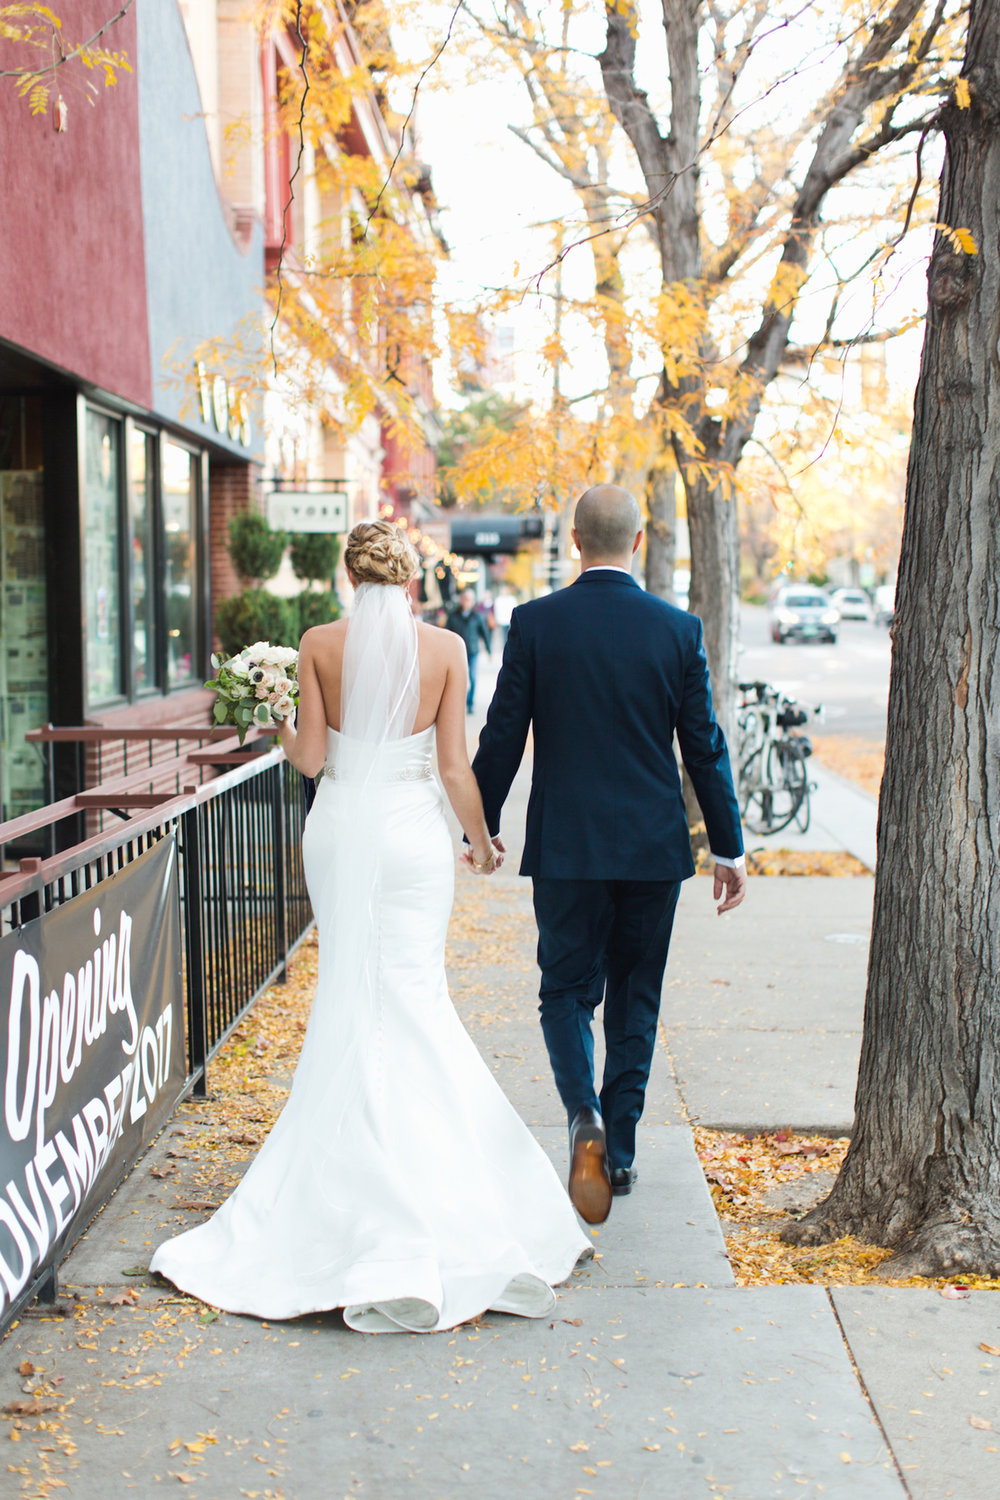 Sophisticated-Gallery-Wedding-in-Boulder-Colorado-10.jpg